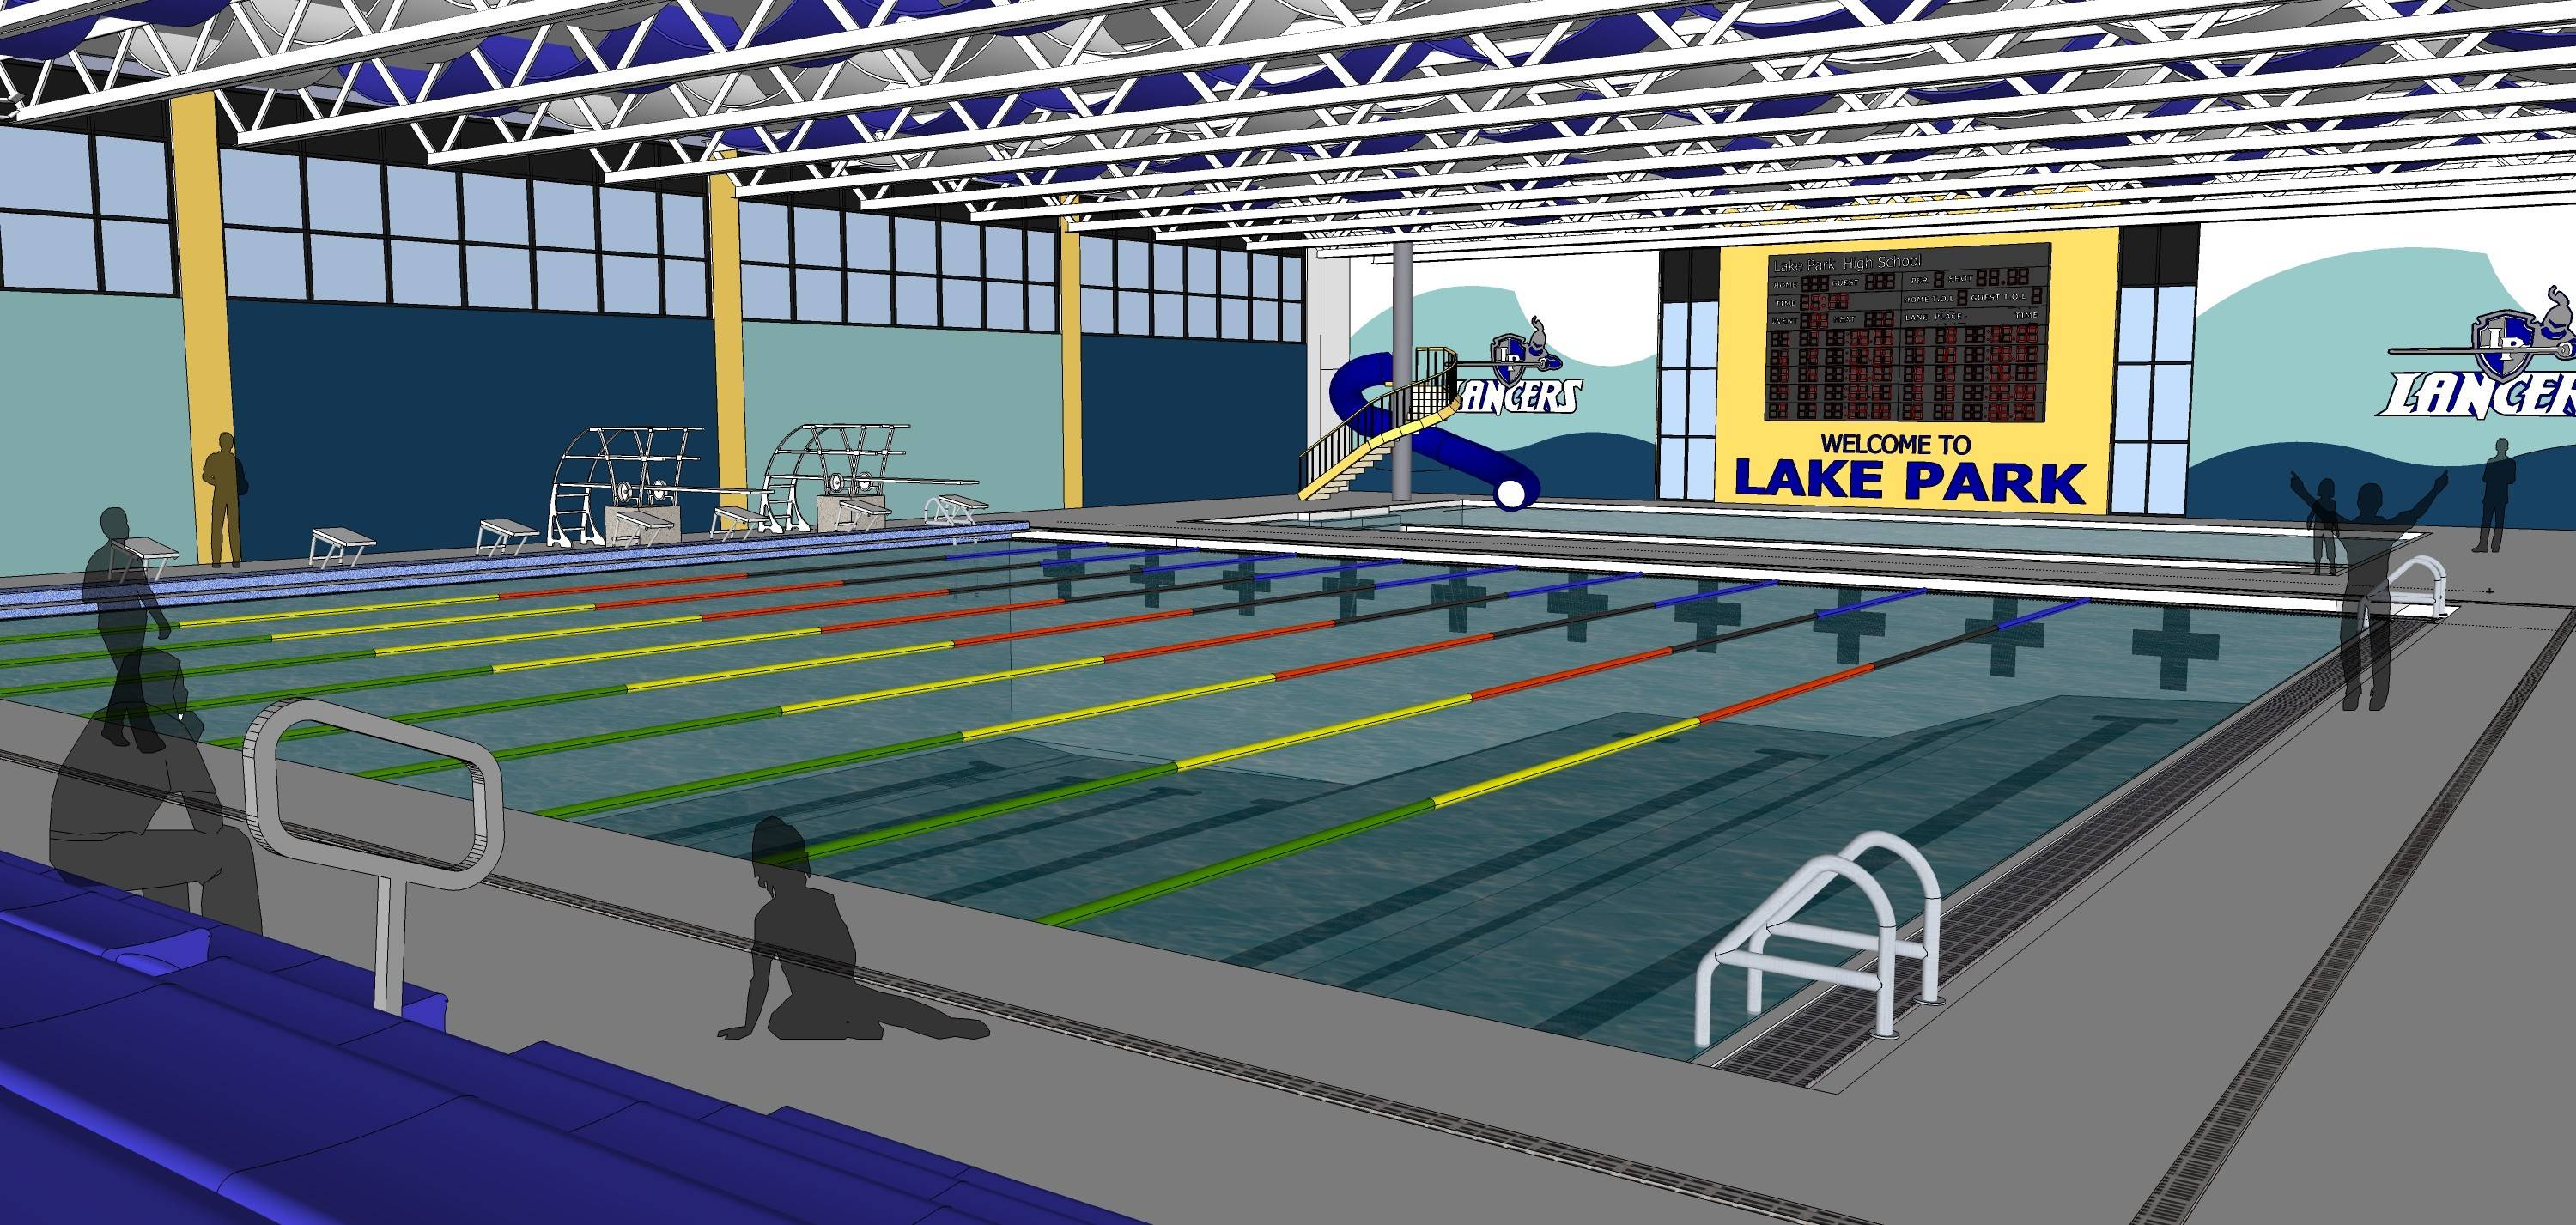 Lake Park High School District 108 is asking voters to fund the construction and operation of an aquatic facility that could be built at the school's east campus by August 2015. Two ballot questions ask if voters will support a proposal to borrow $8.5 million to build the pool and a tax rate increase to bring in an additional $390,000 a year to operate it.